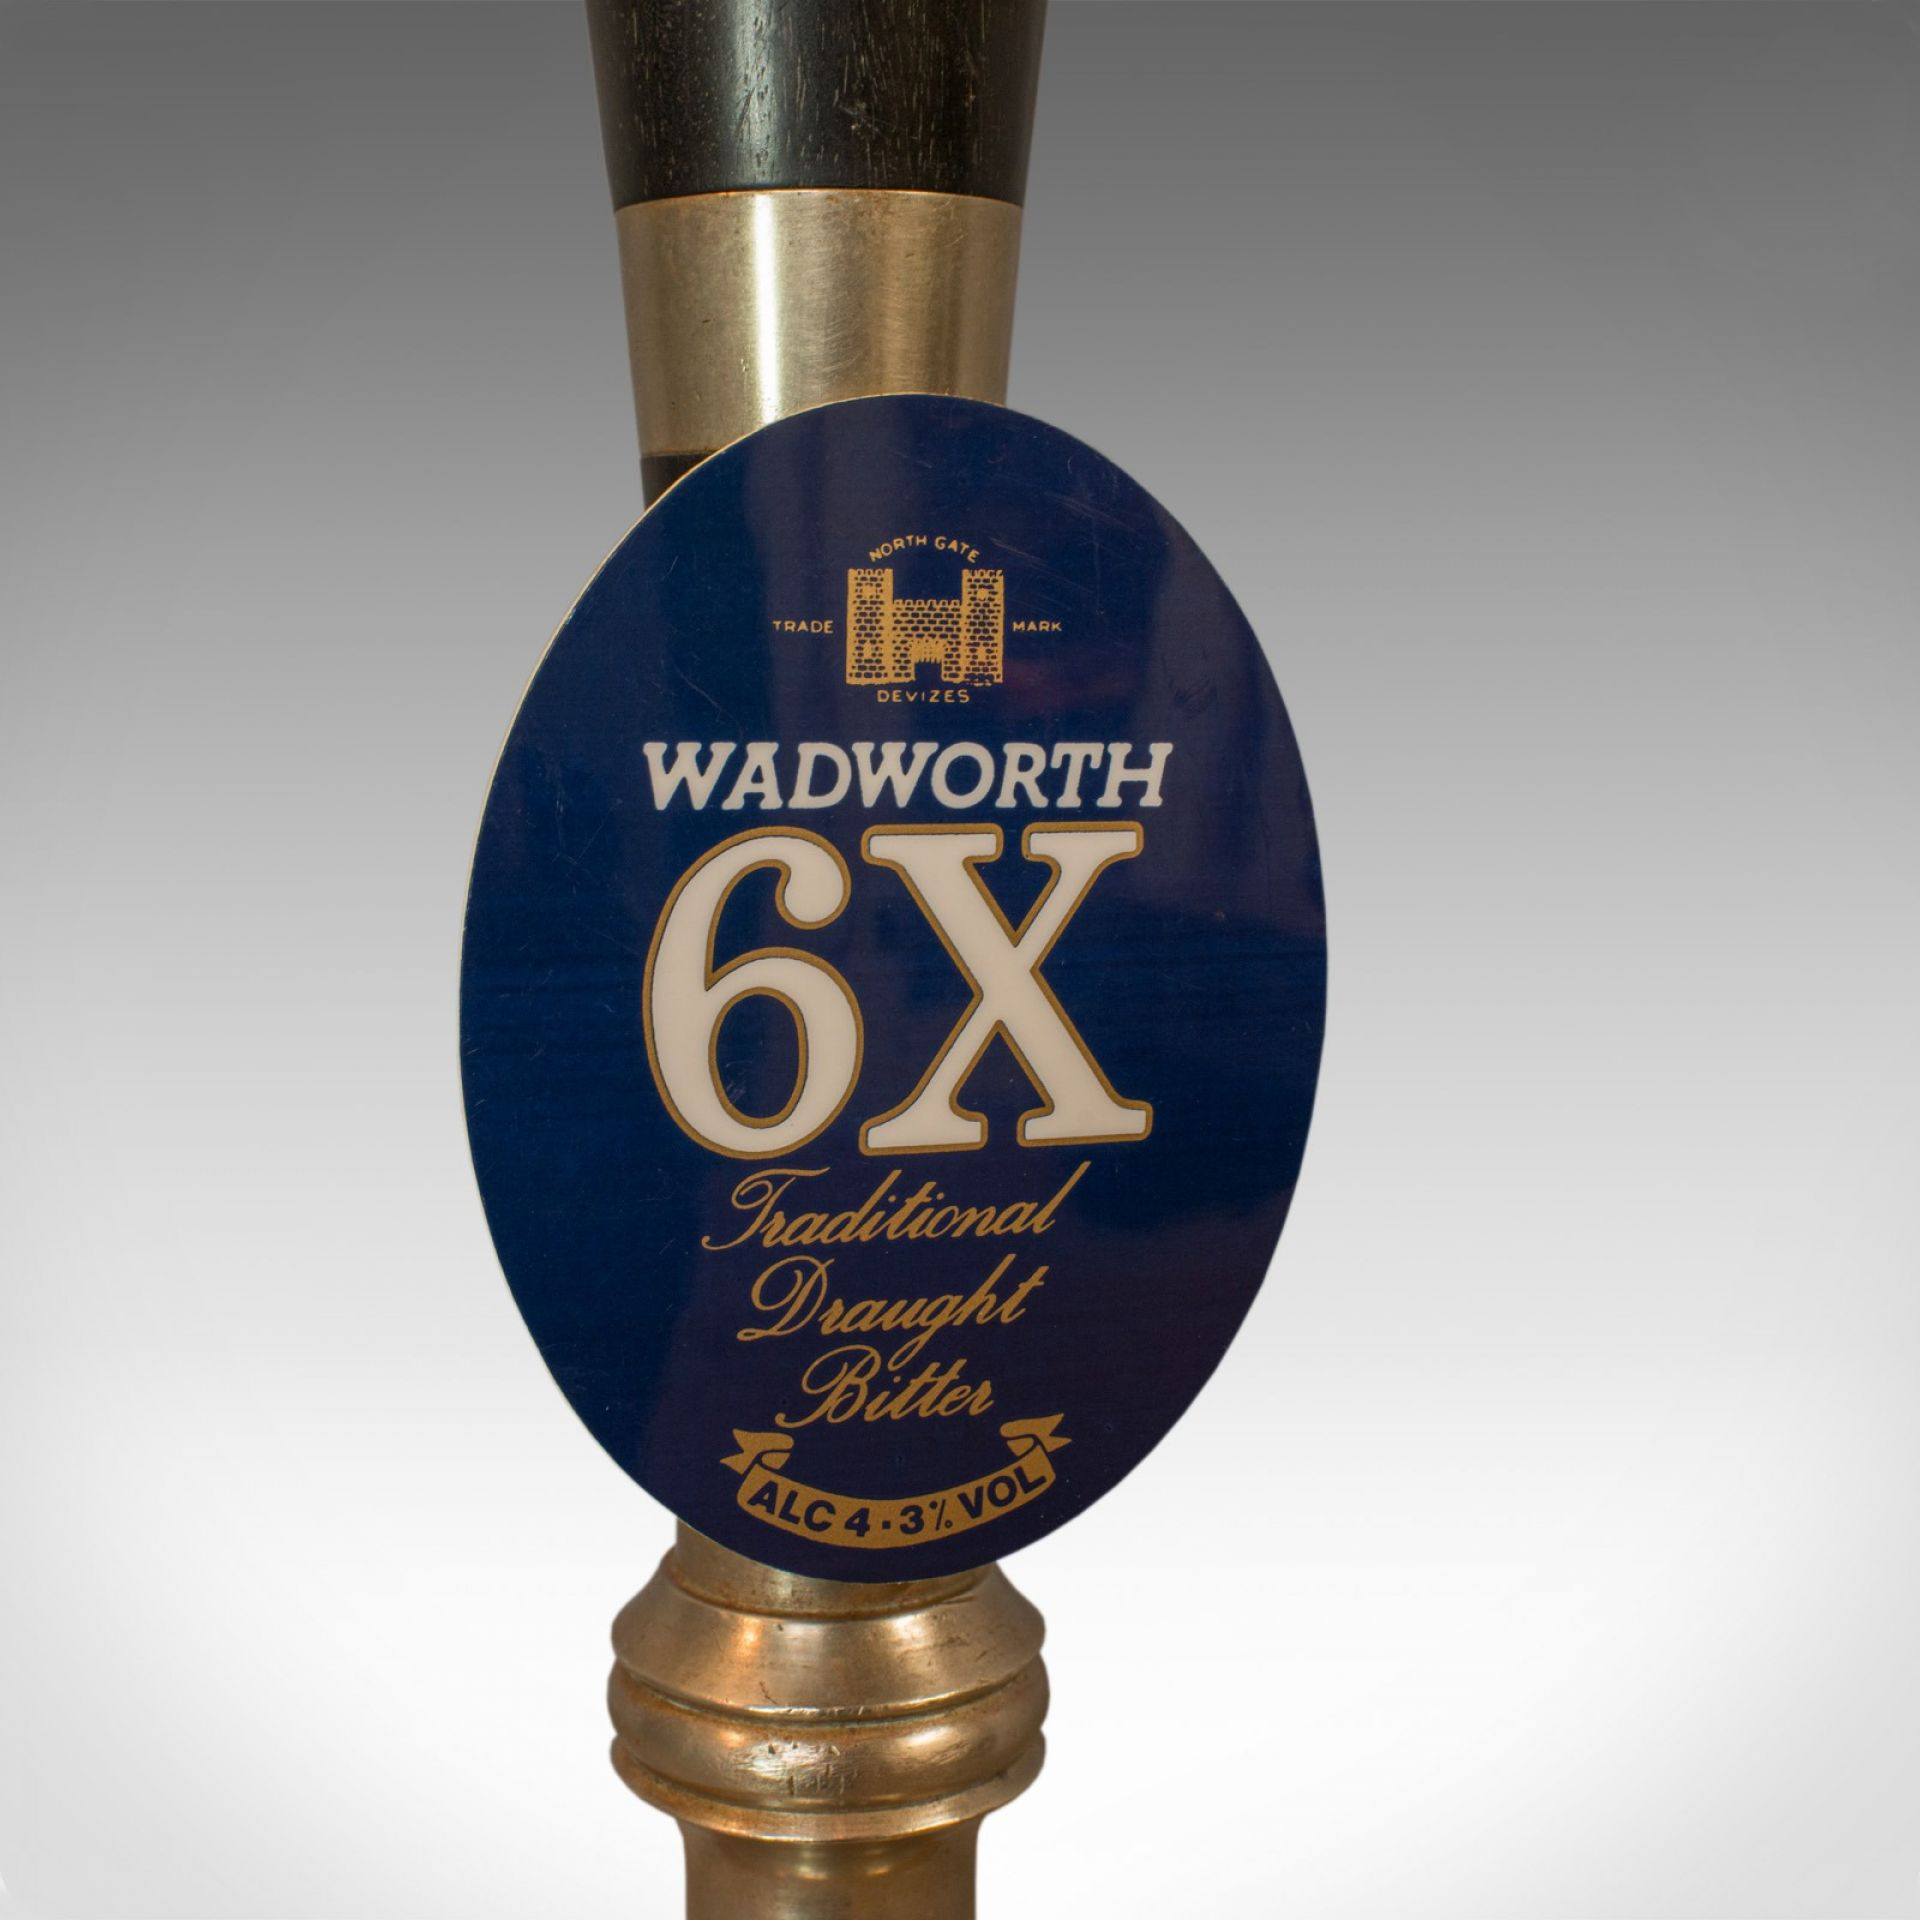 Vintage Beer Pump Lamp. English, Bespoke, Handcrafted, Public House, Table Light